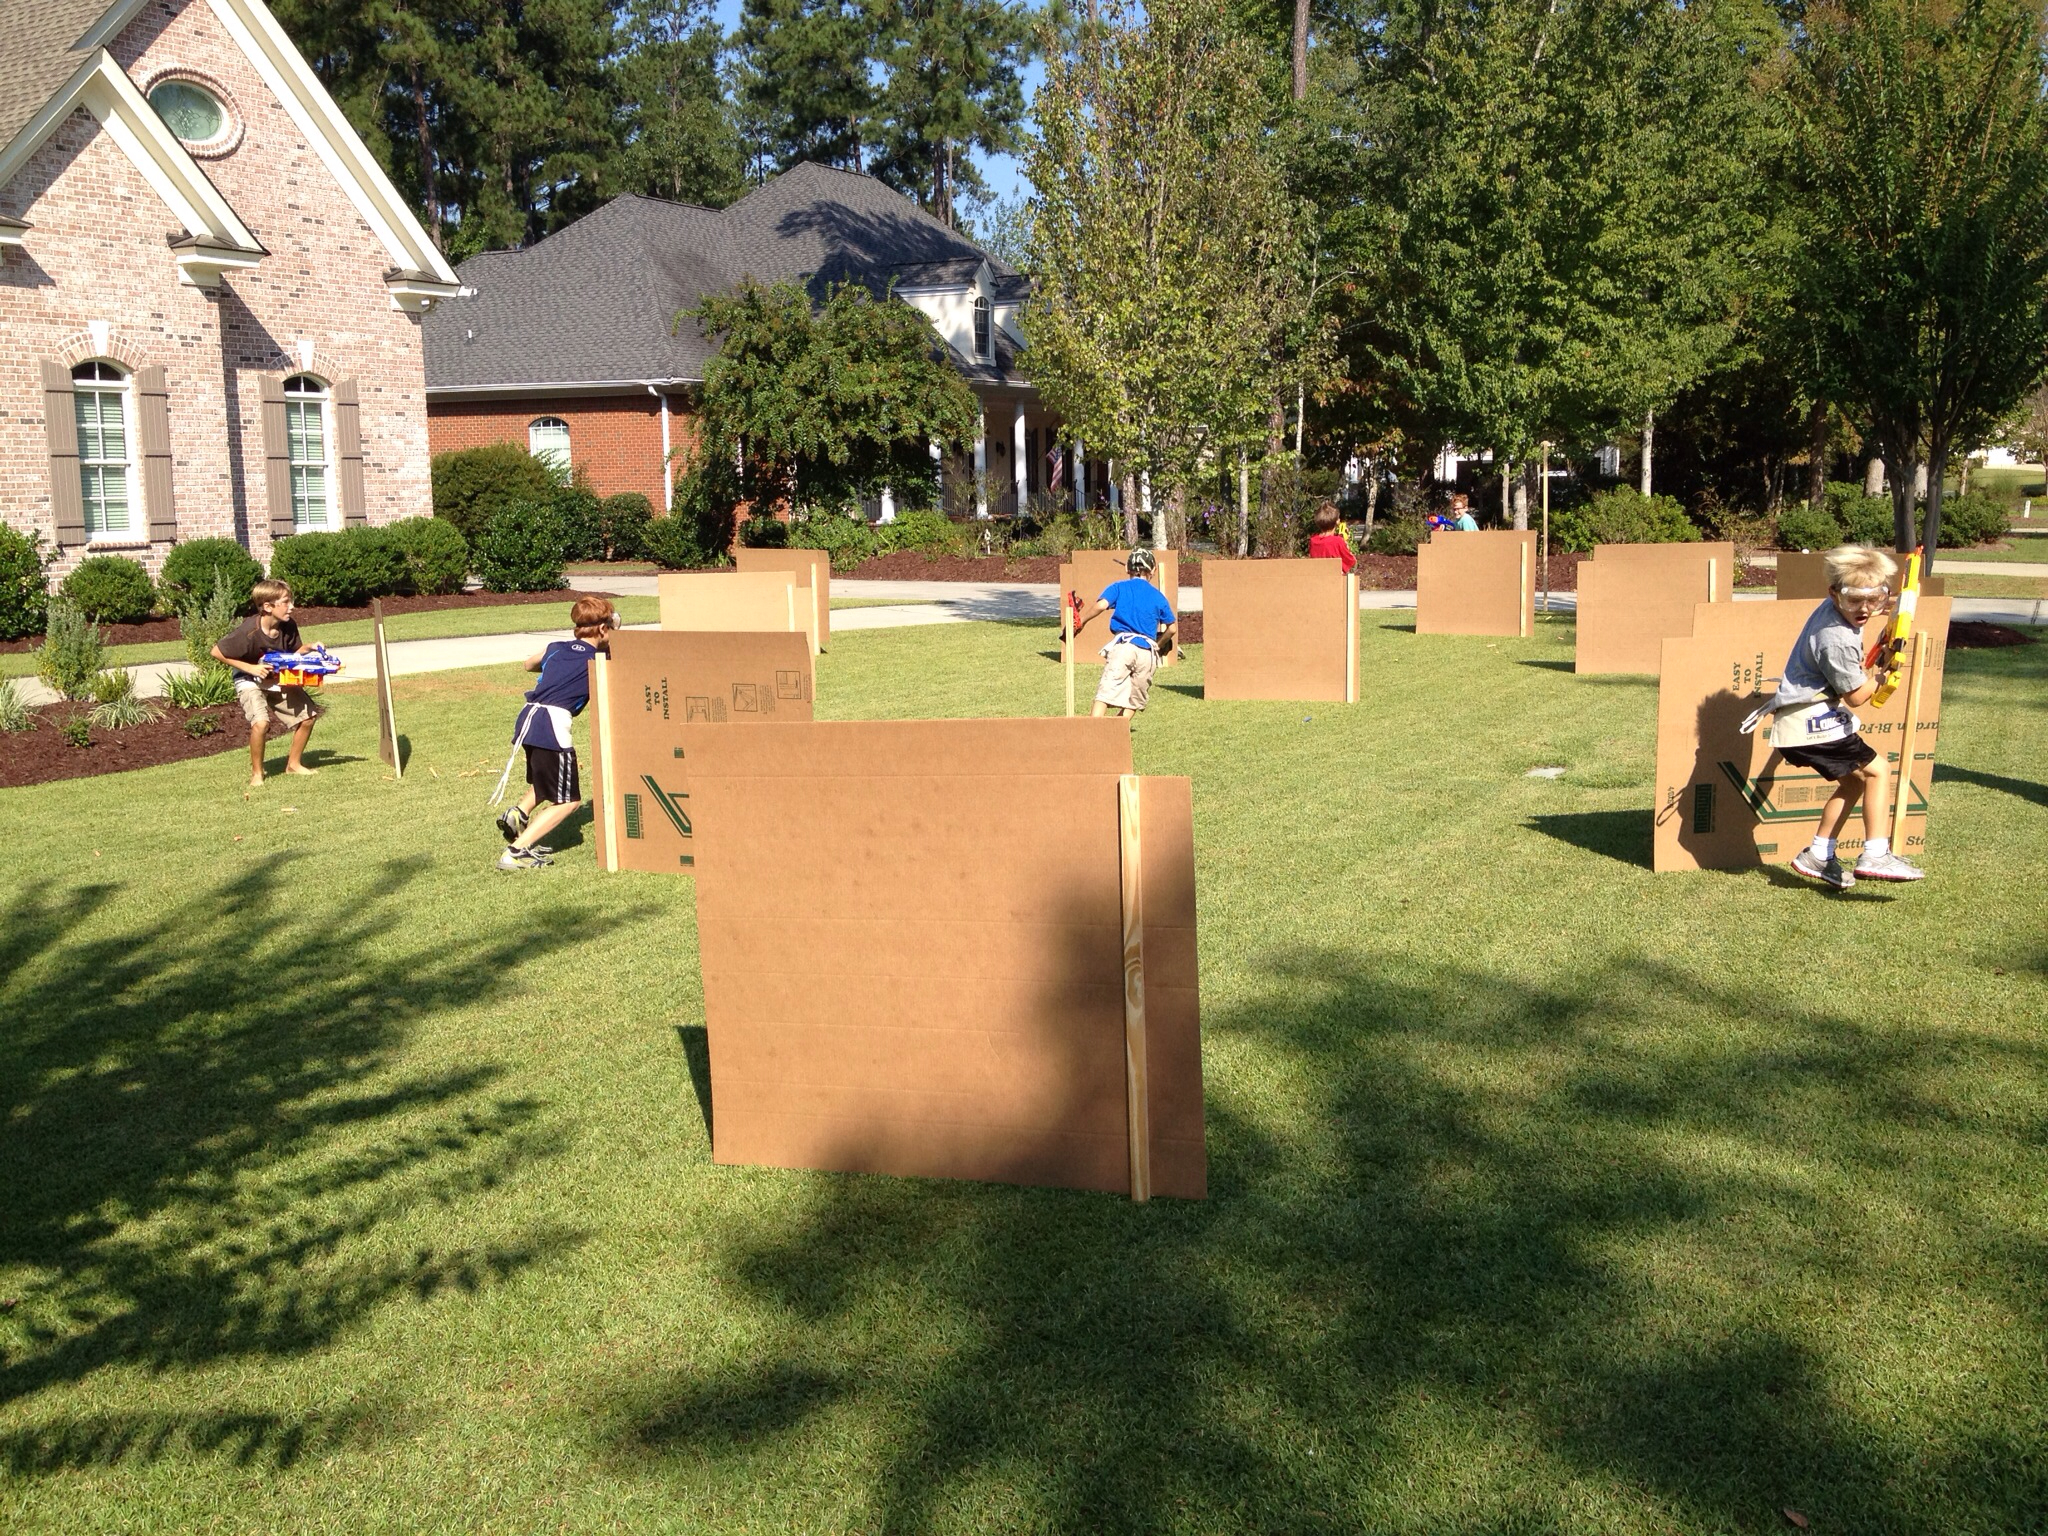 cardboard barricades supported by wooden stakes and a staple gun